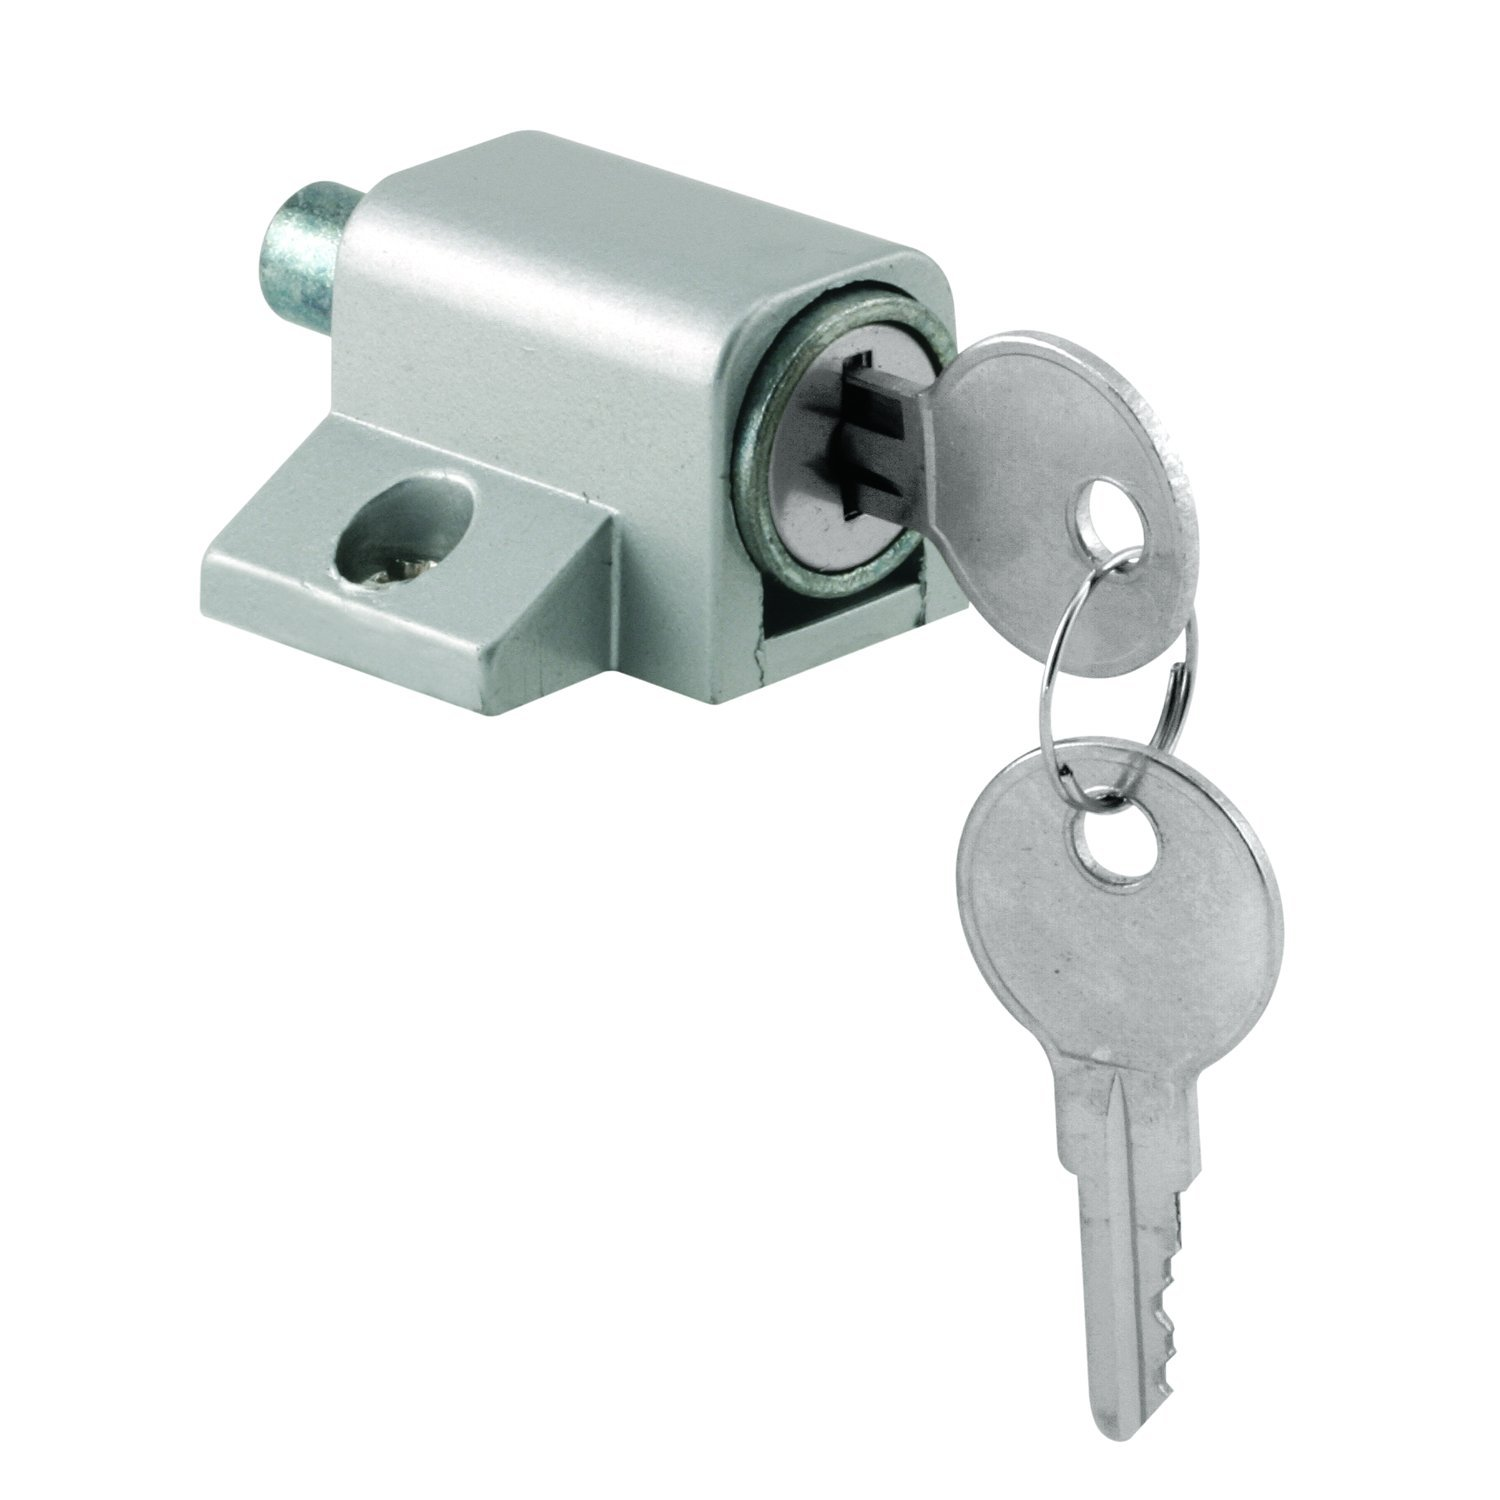 Prime Line U 9861 Push In Sliding Door Keyed Lock, Aluminum Finish   Door  Hardware   Amazon.com